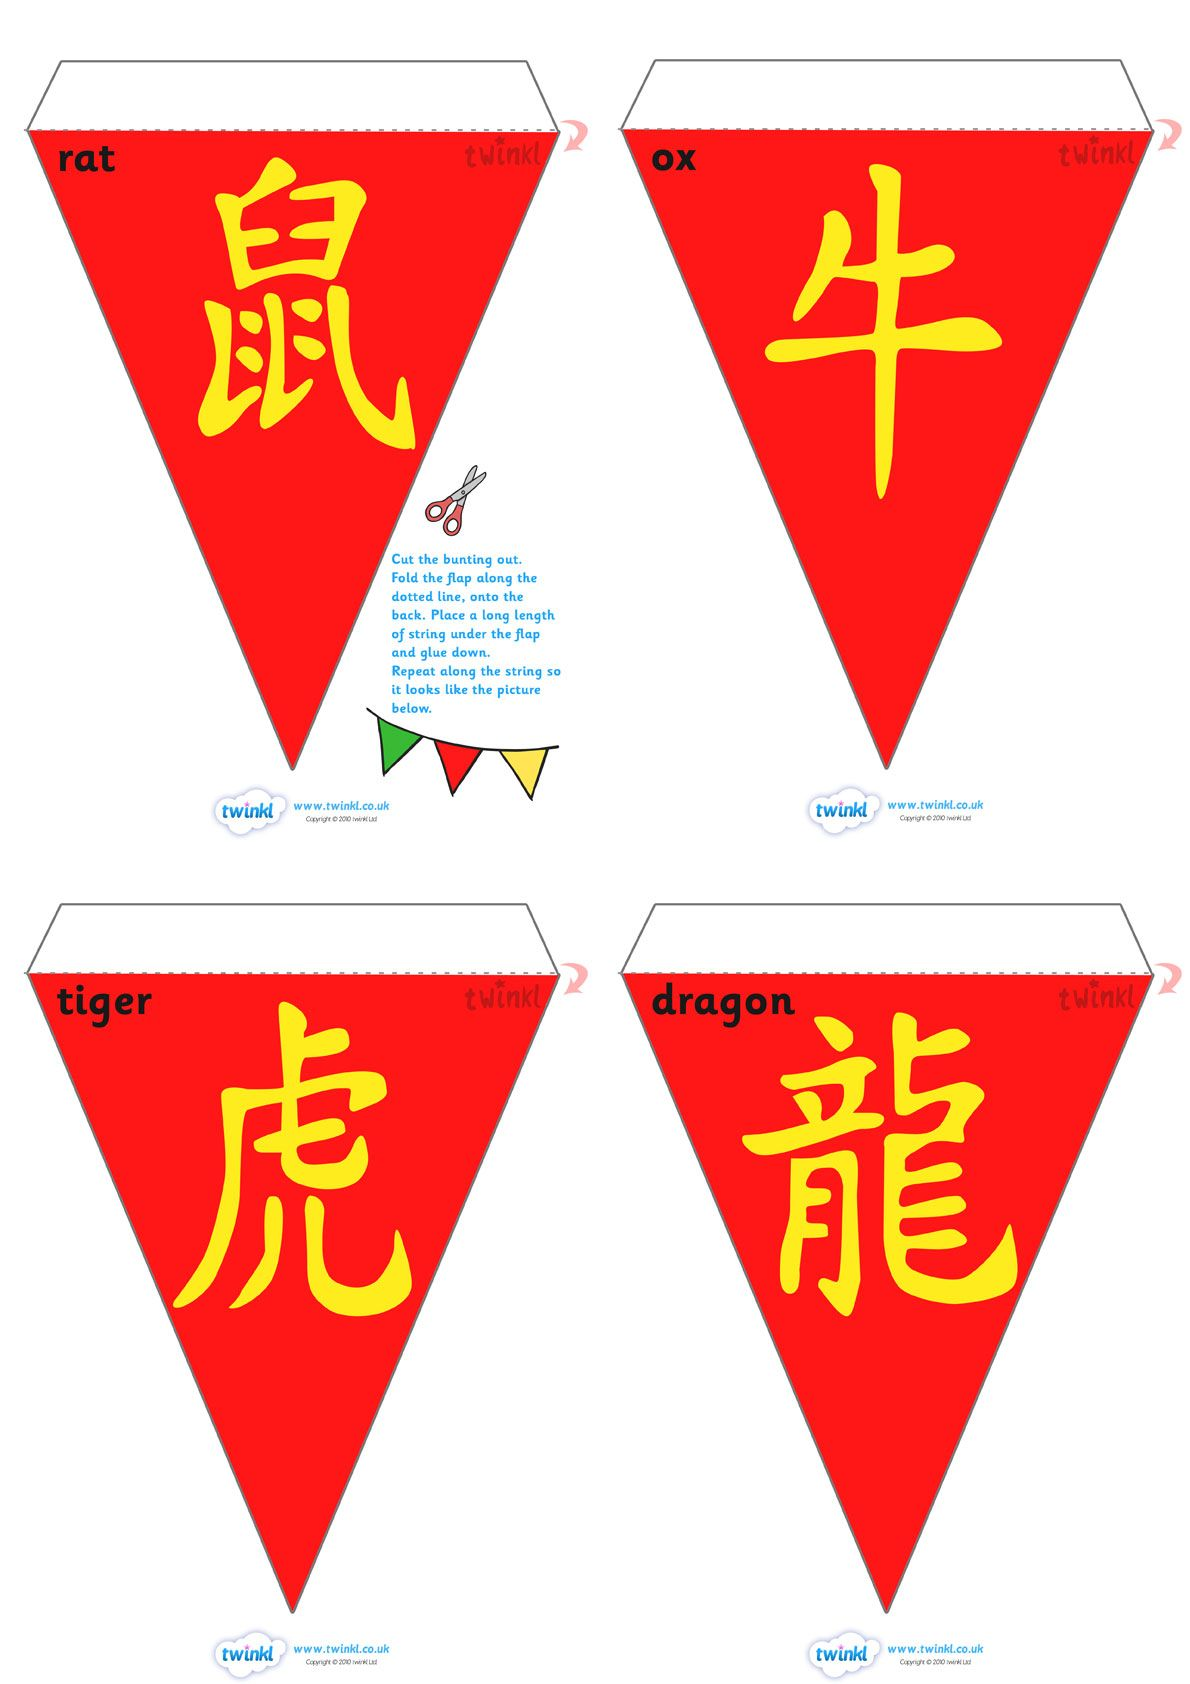 chinese new year bunting symbols pop over to our site at www twinkl co uk and c chinese new year activities chinese new year crafts chinese new year party chinese new year bunting symbols